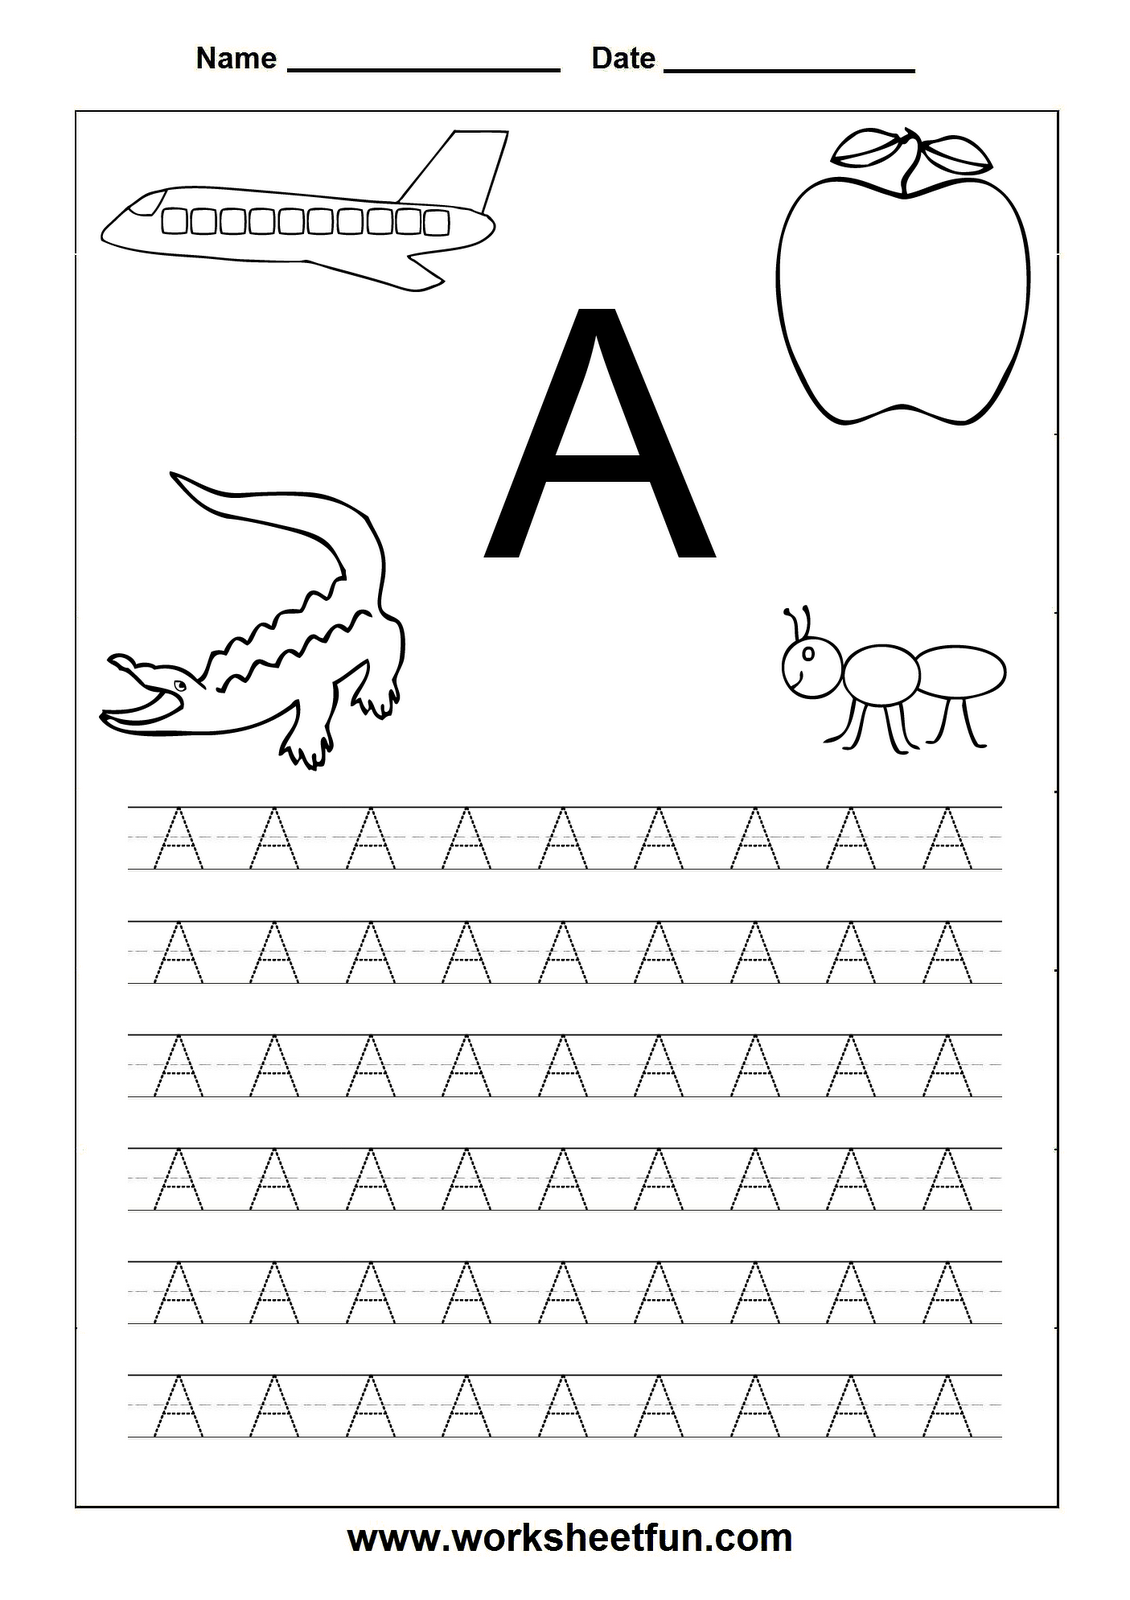 Printables Free Printable Preschool Worksheets Tracing Letters free printable tracing letter s worksheets for preschool a z capital there are plenty more on various subjects on